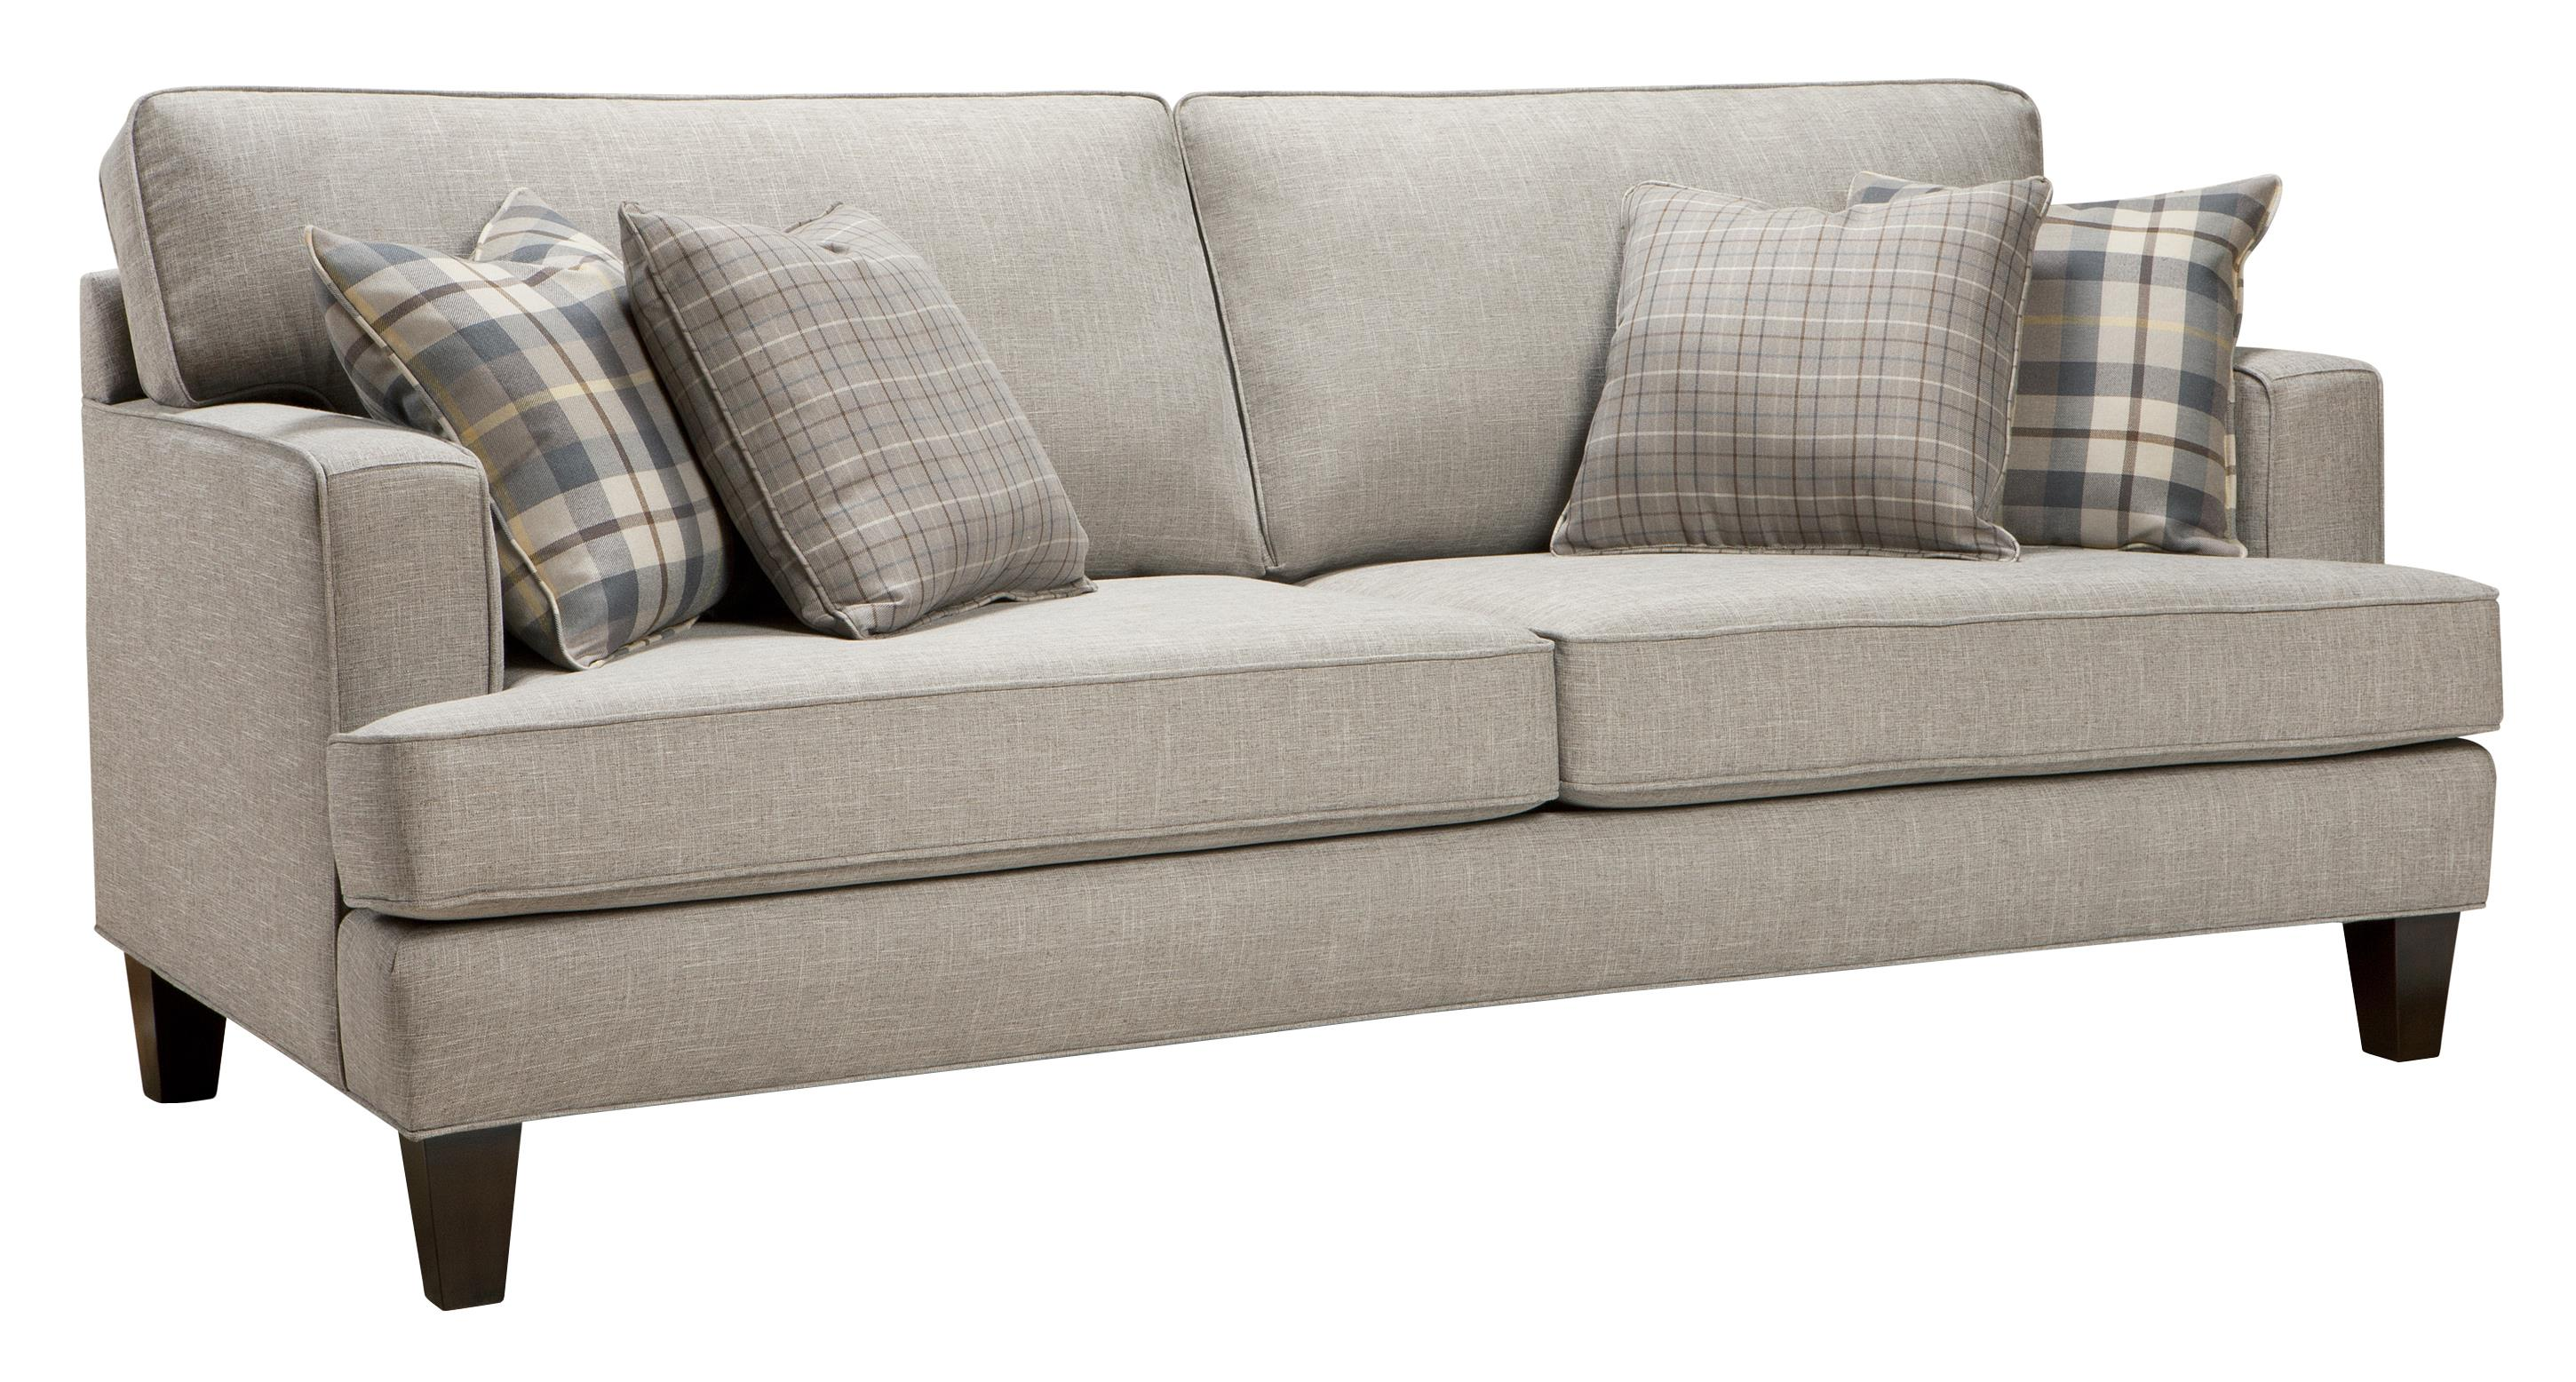 9671 Two Seat Sofa by Superstyle at Jordan's Home Furnishings